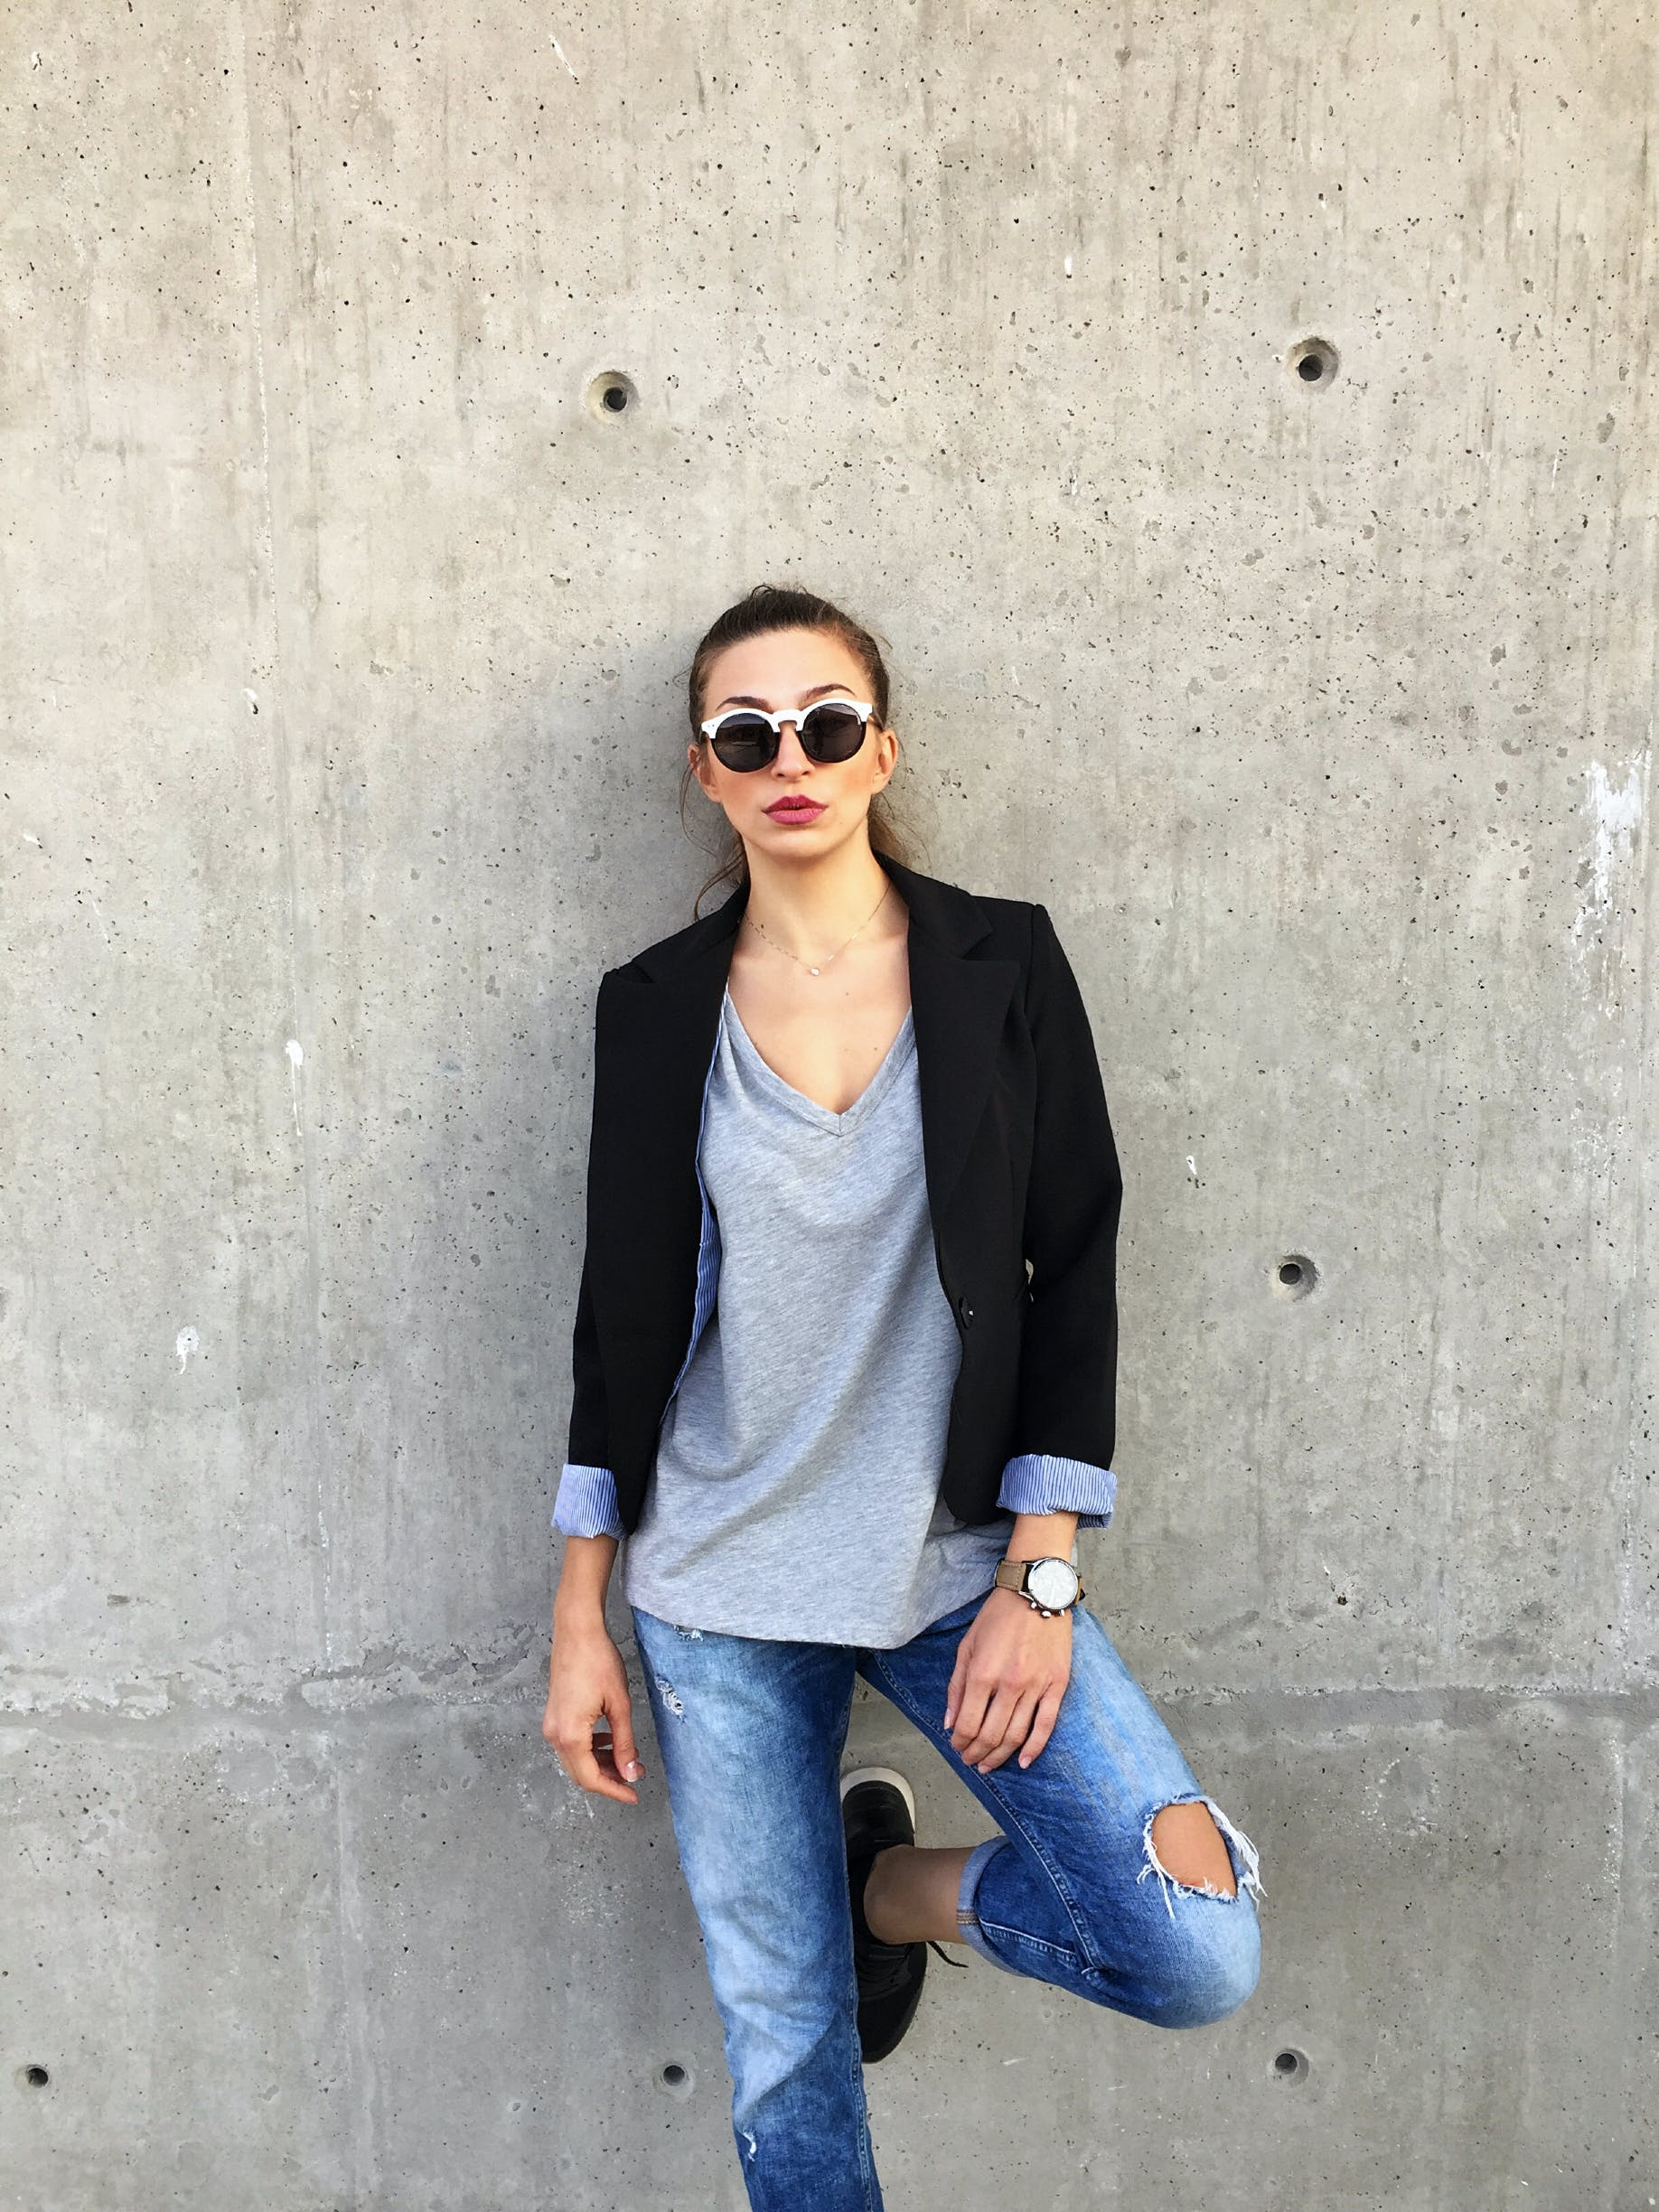 Woman Wearing Sunglasses Leaning on Concrete Wall With Left Toe on Wall